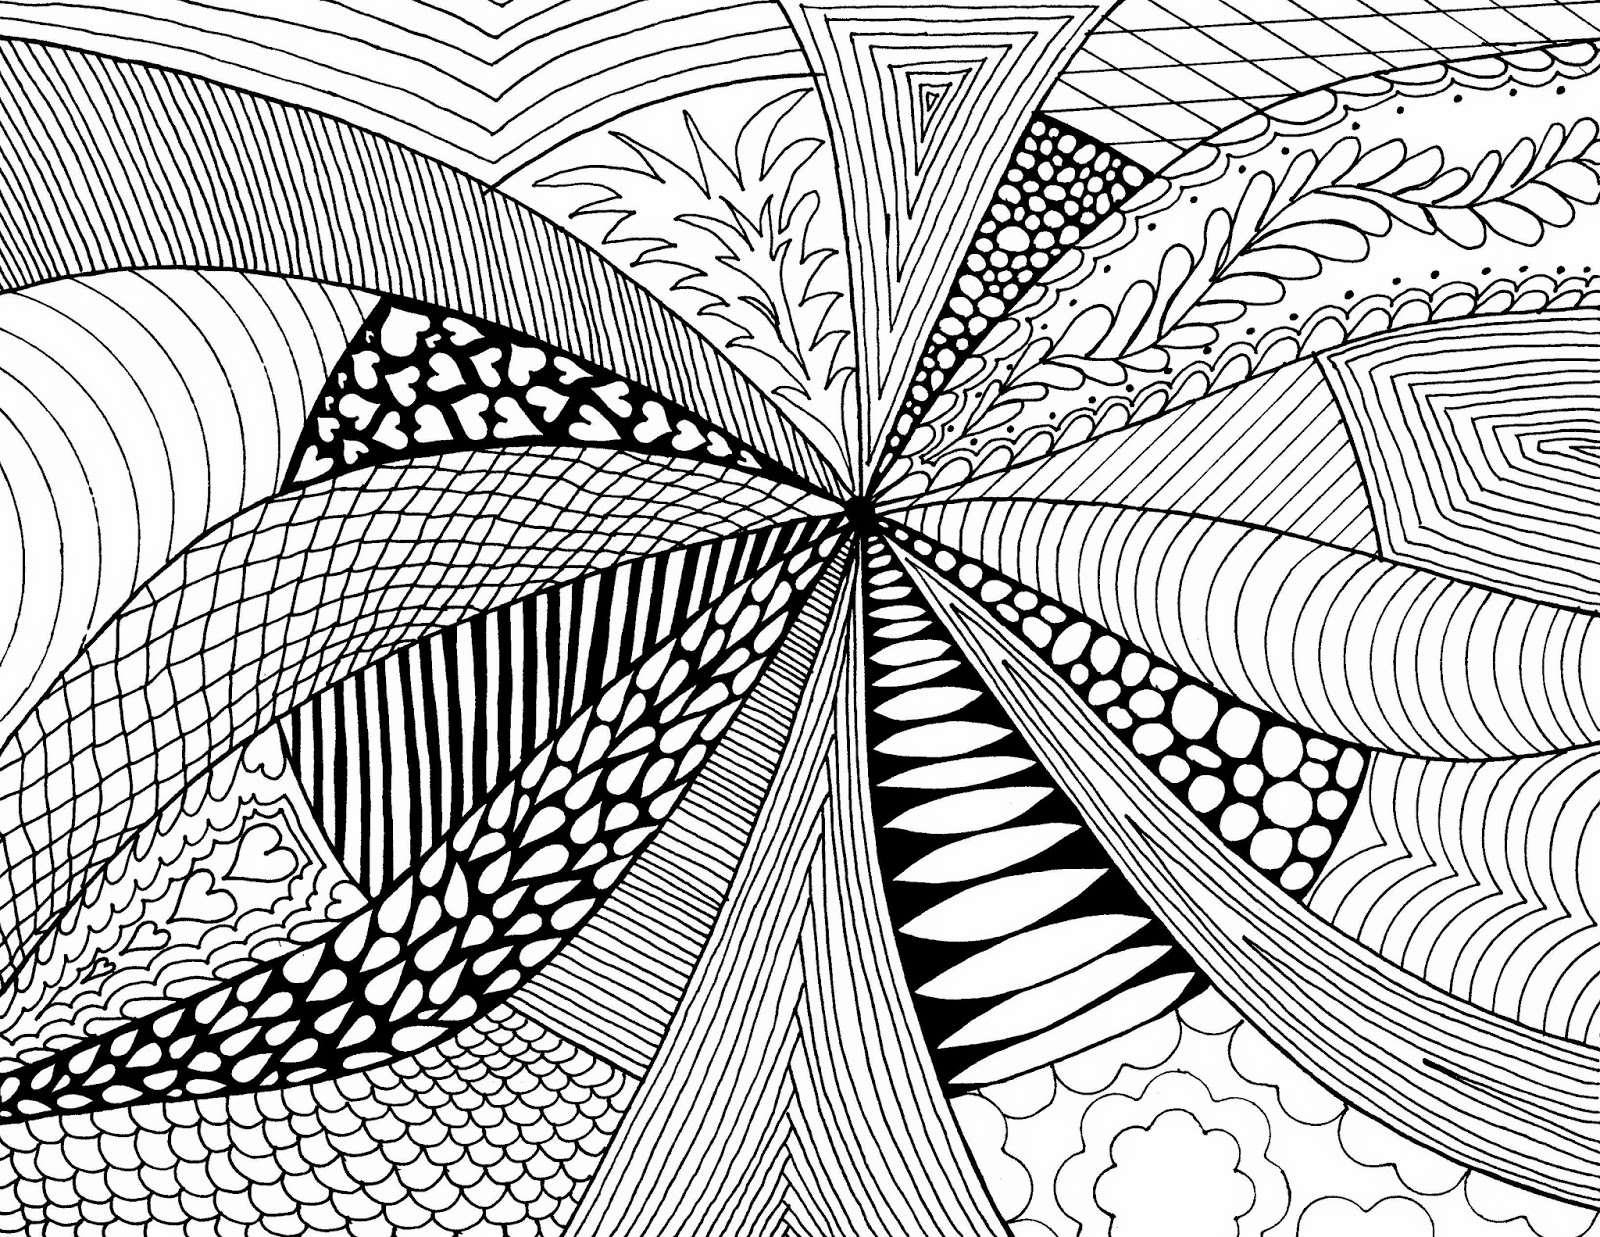 Abstract Line Art Design : Mother is not pleased drawing the lines